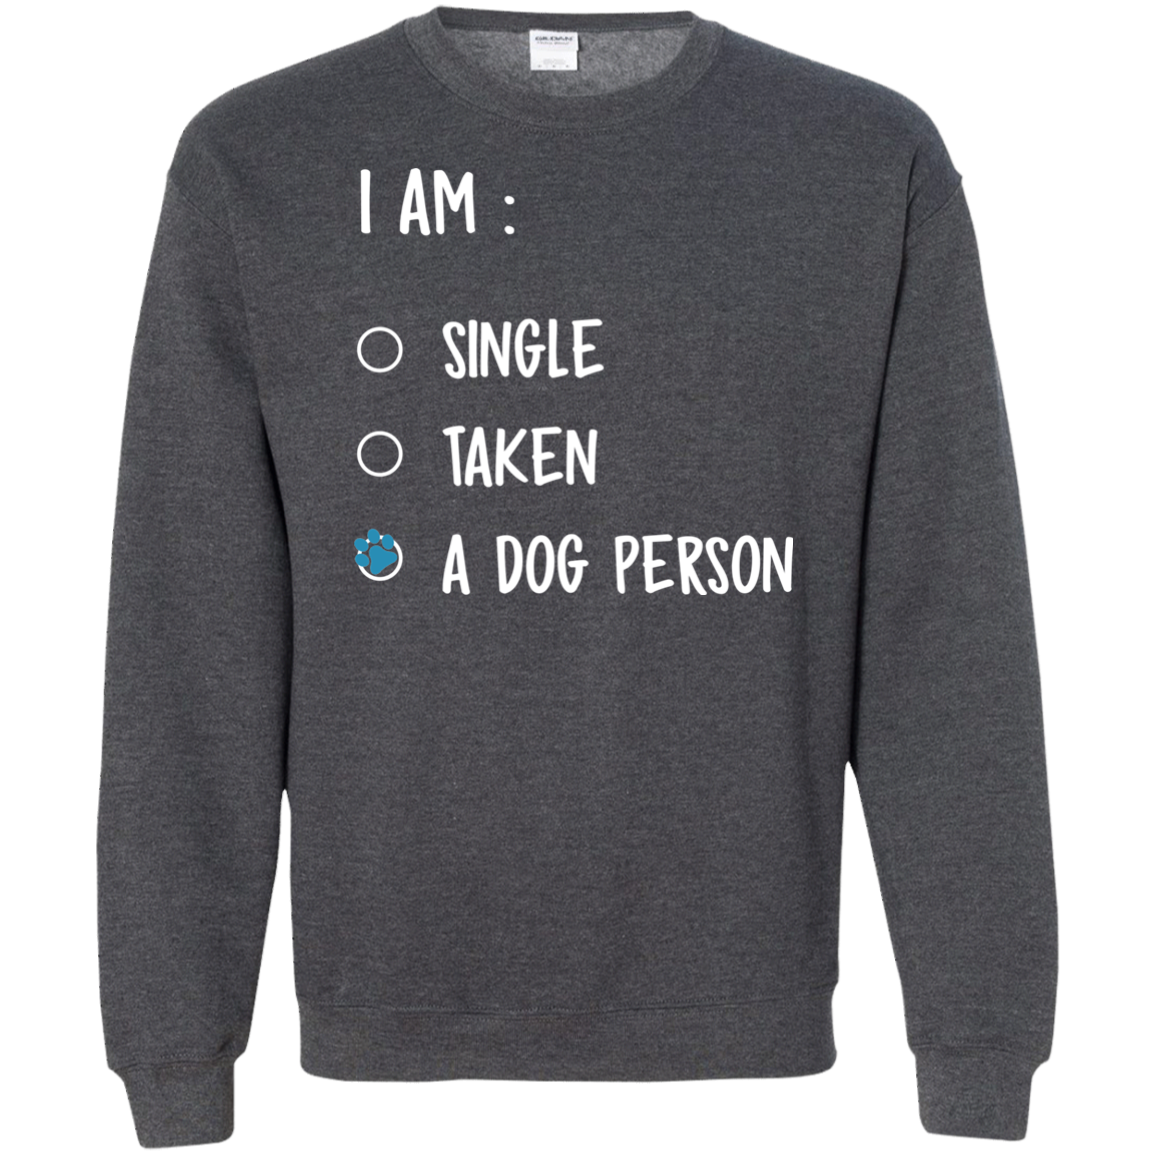 Dog Person Sweatshirt